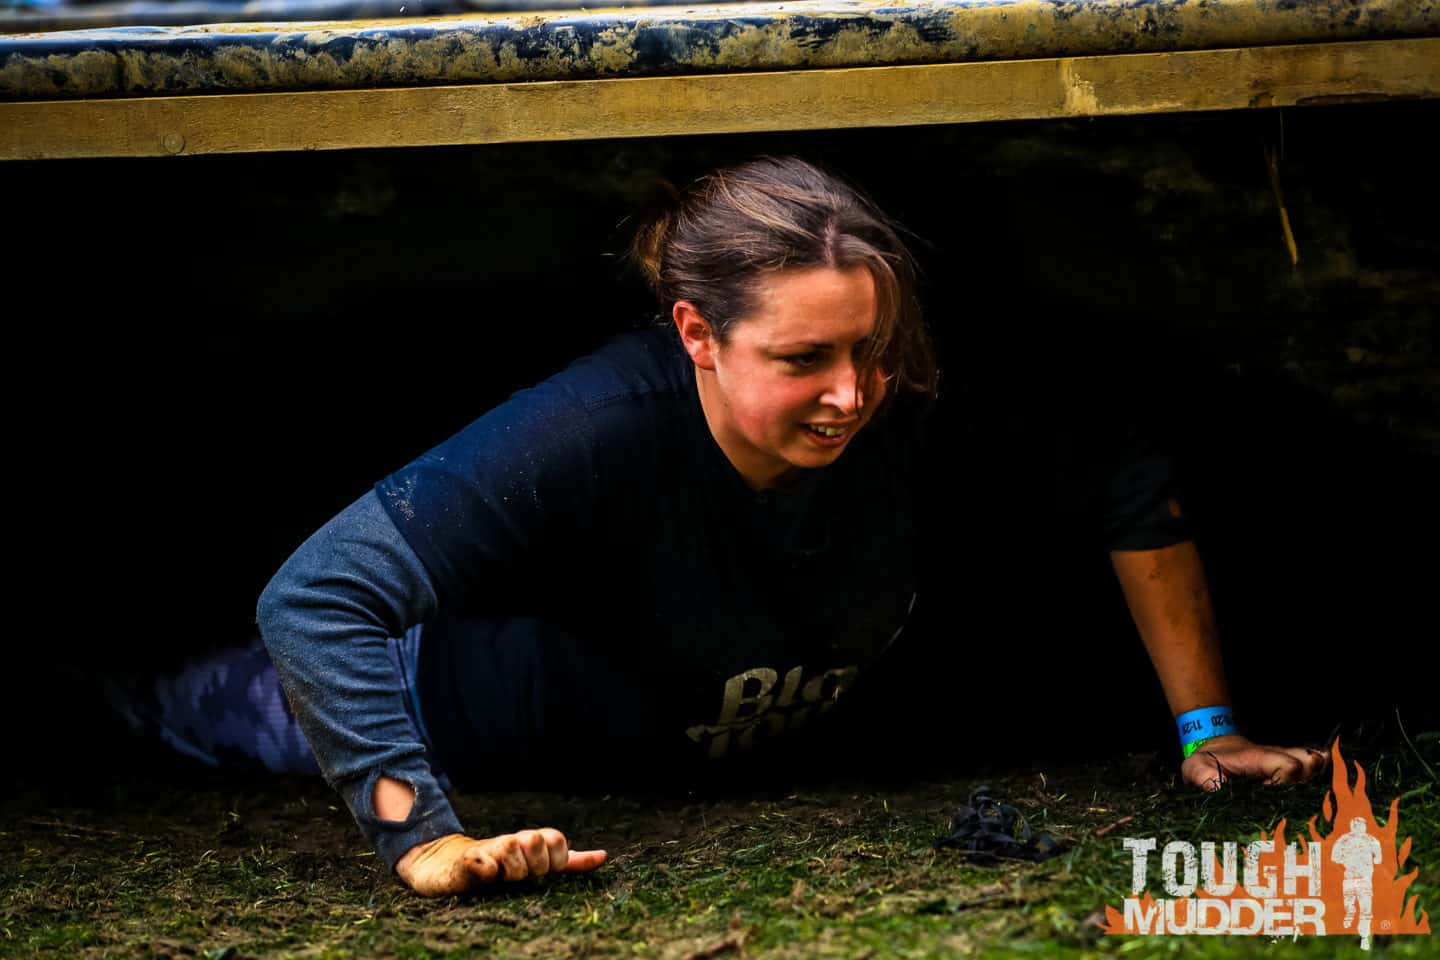 Getting in touch with nature at ground level on Clapham Common for Urban Tough Mudder